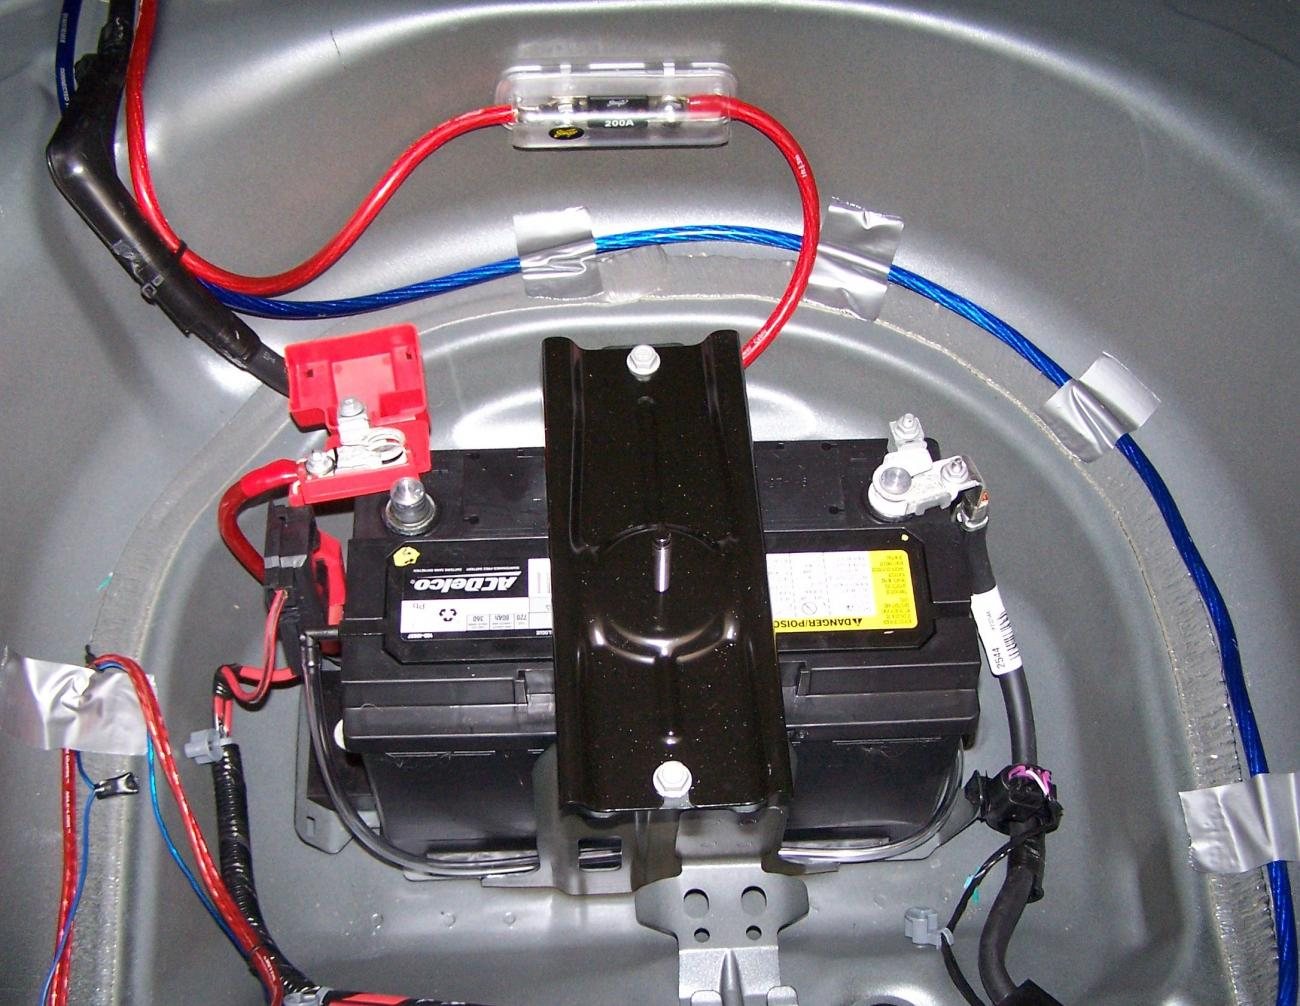 2005 Chevy Equinox Blower Motor Location likewise Spark Plug Location together with F150 Fuel Filter Location together with Spark Plug Location moreover Eg Fuse Box. on ford f150 wiring chart